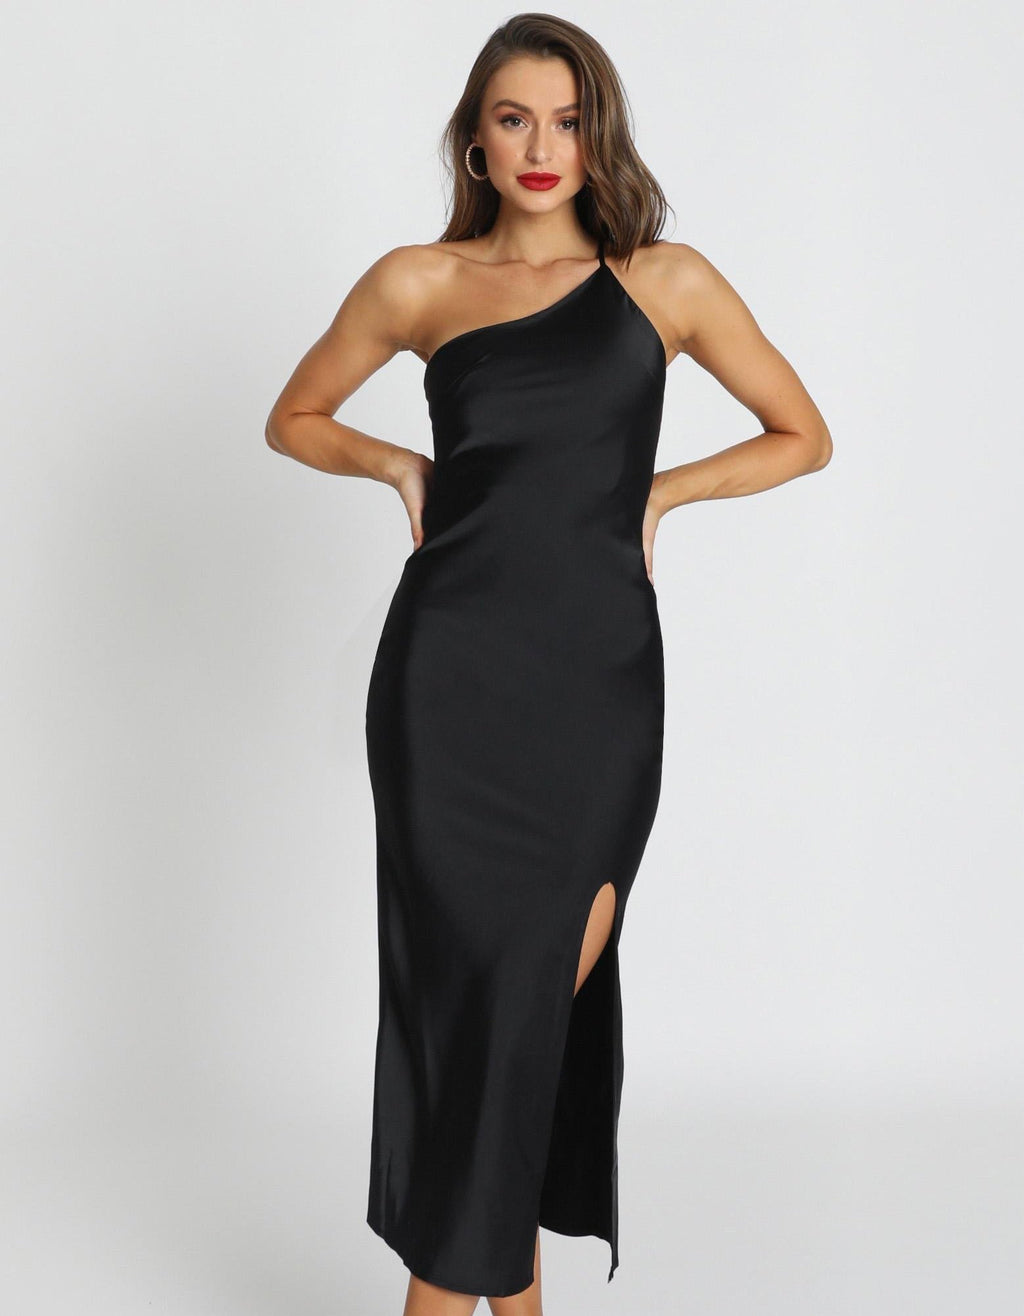 Nor Black One Shoulder Satin Dress